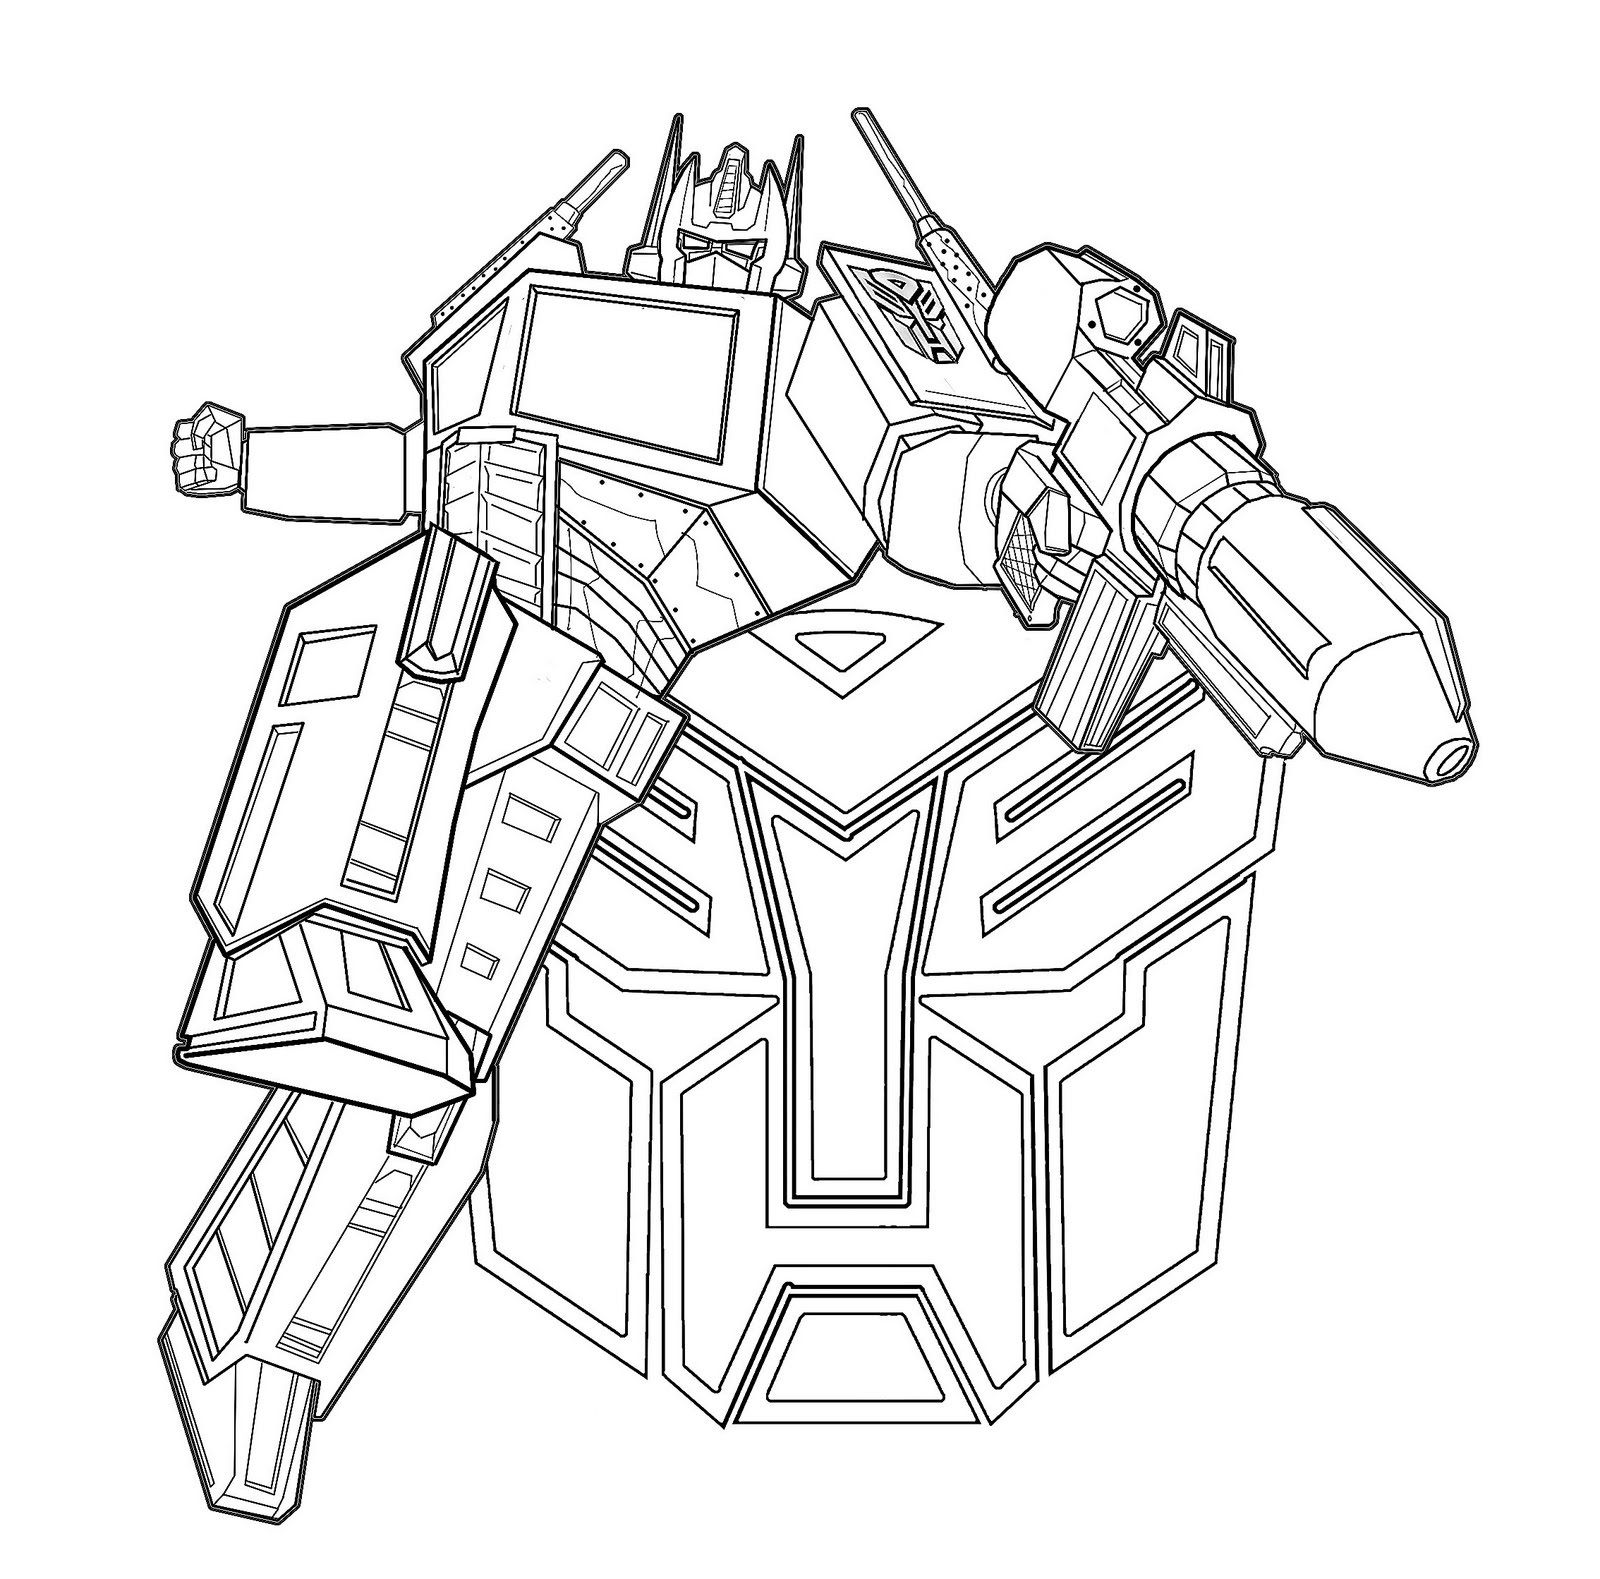 Coolest Transformers Coloring Pages Decepticons Http Coloring